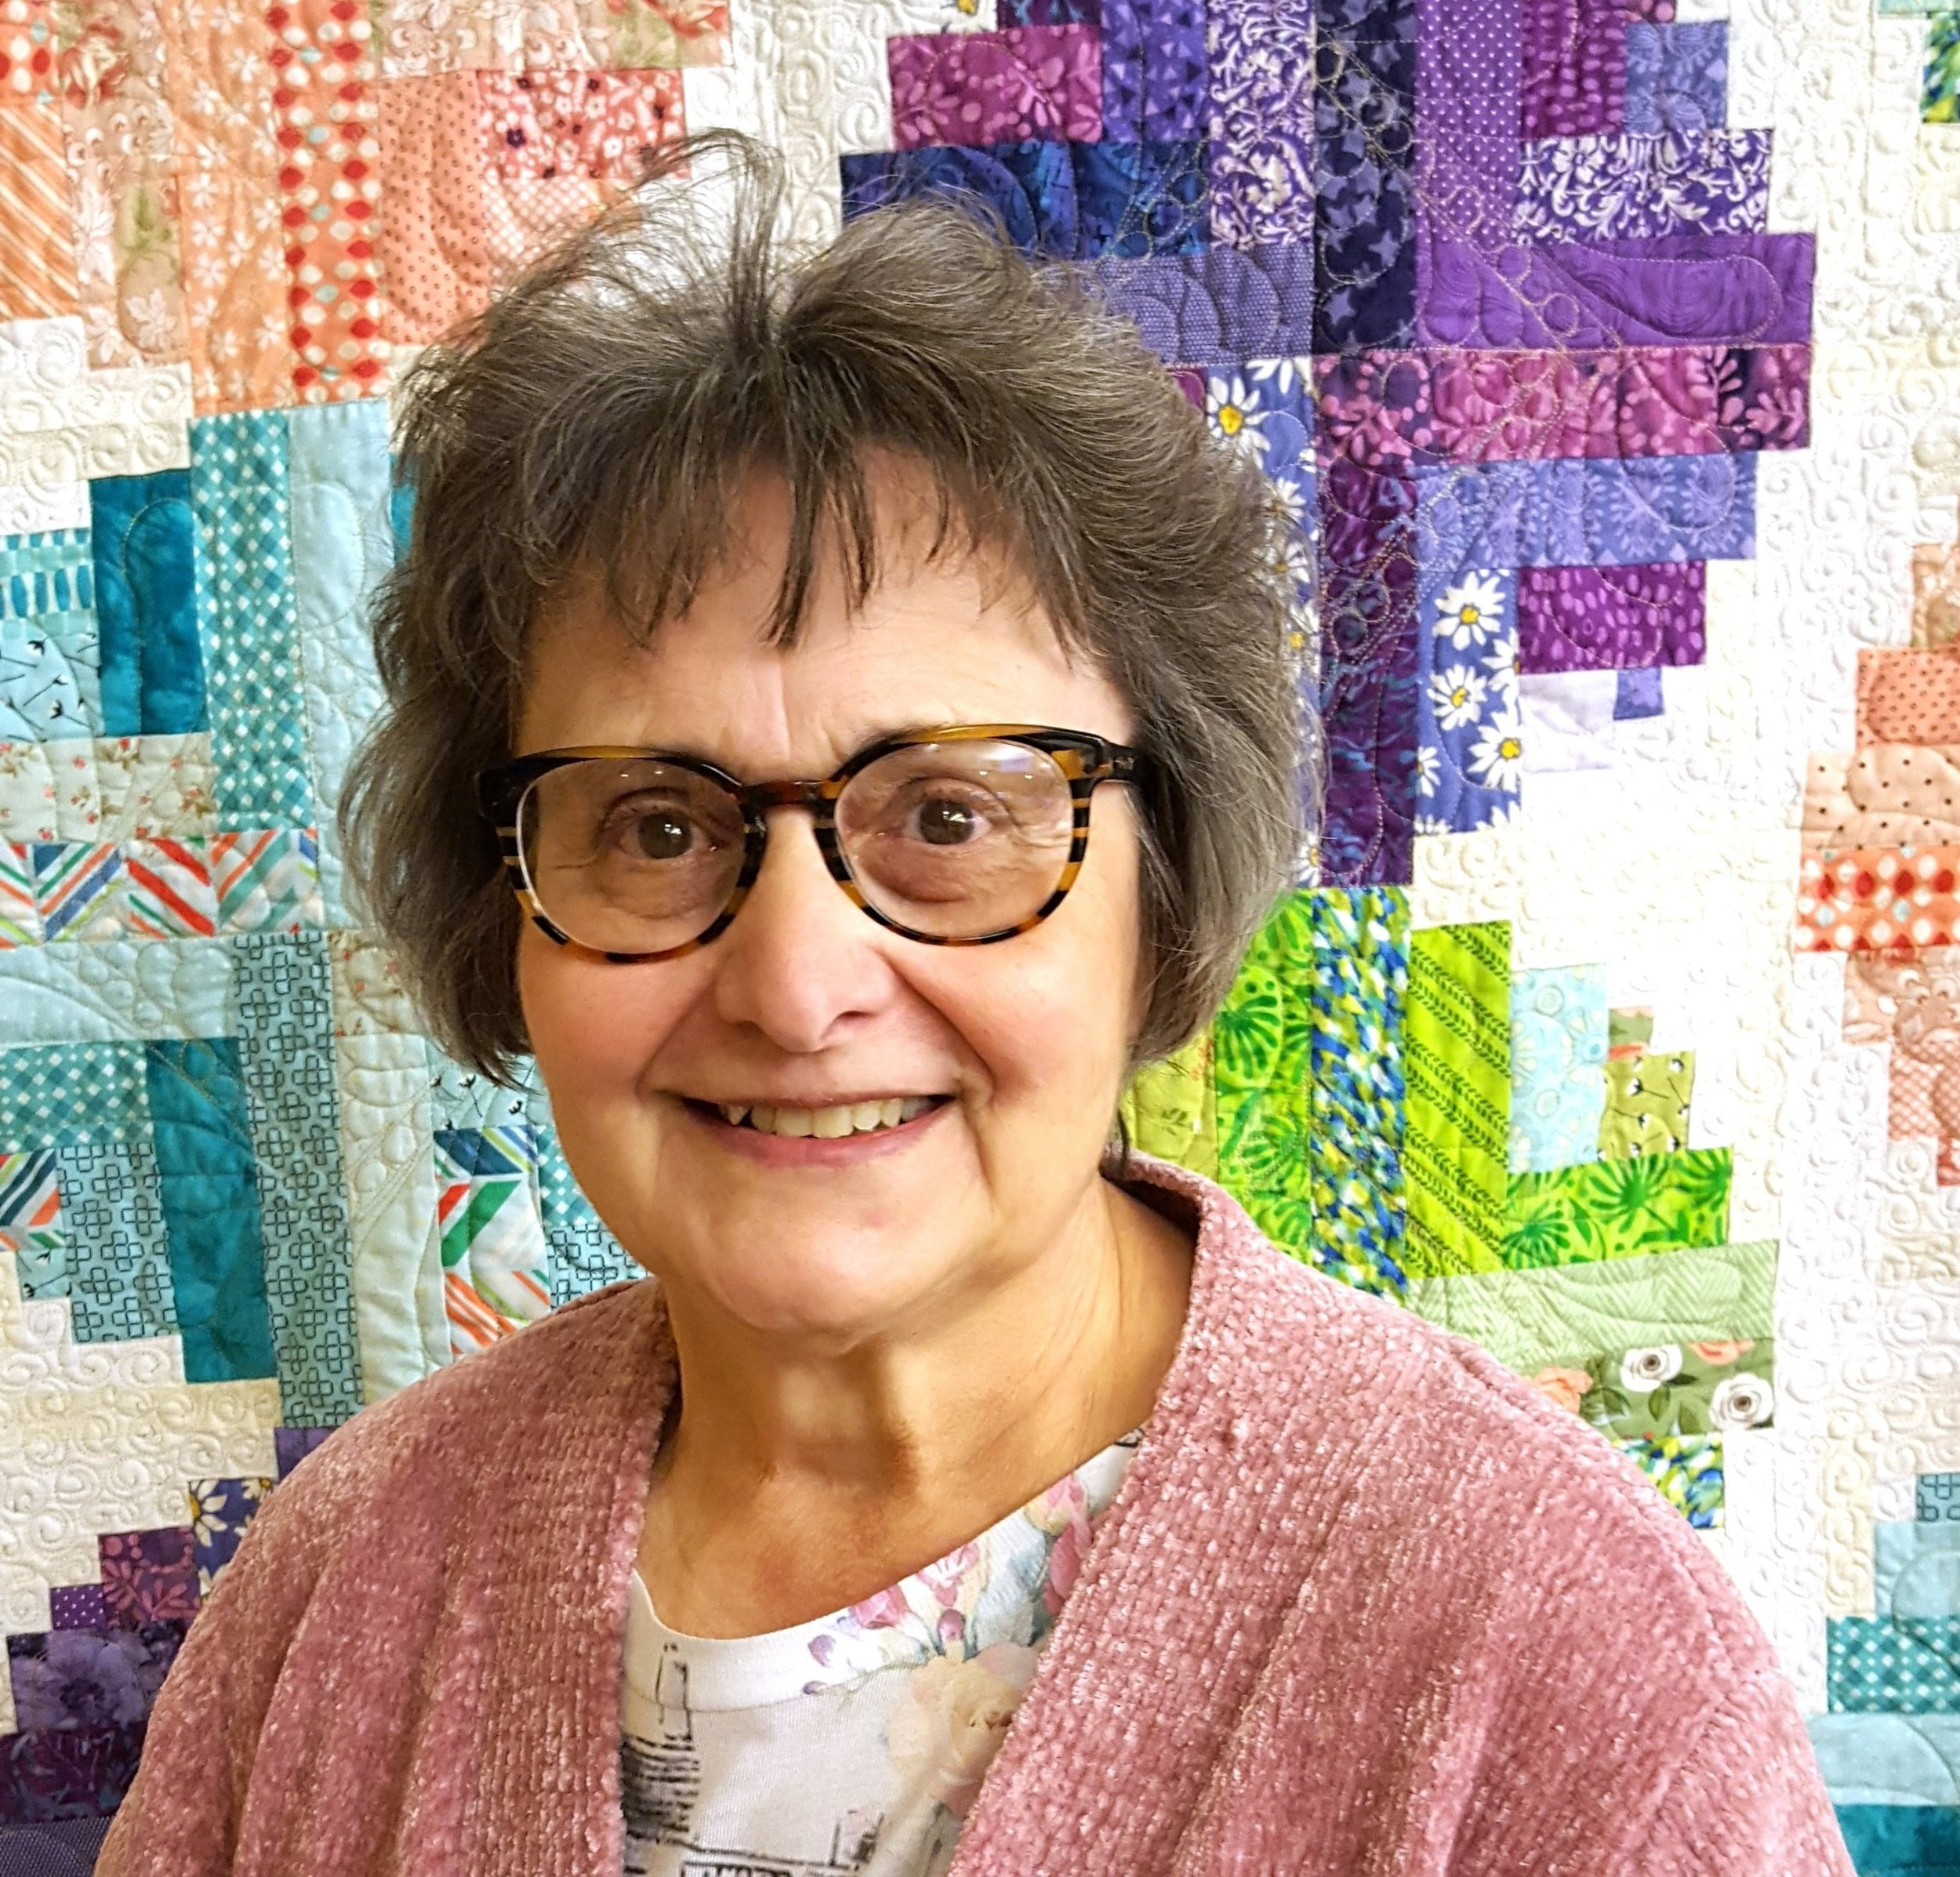 candy hargrove picture in front of opportunity quilt.jpg